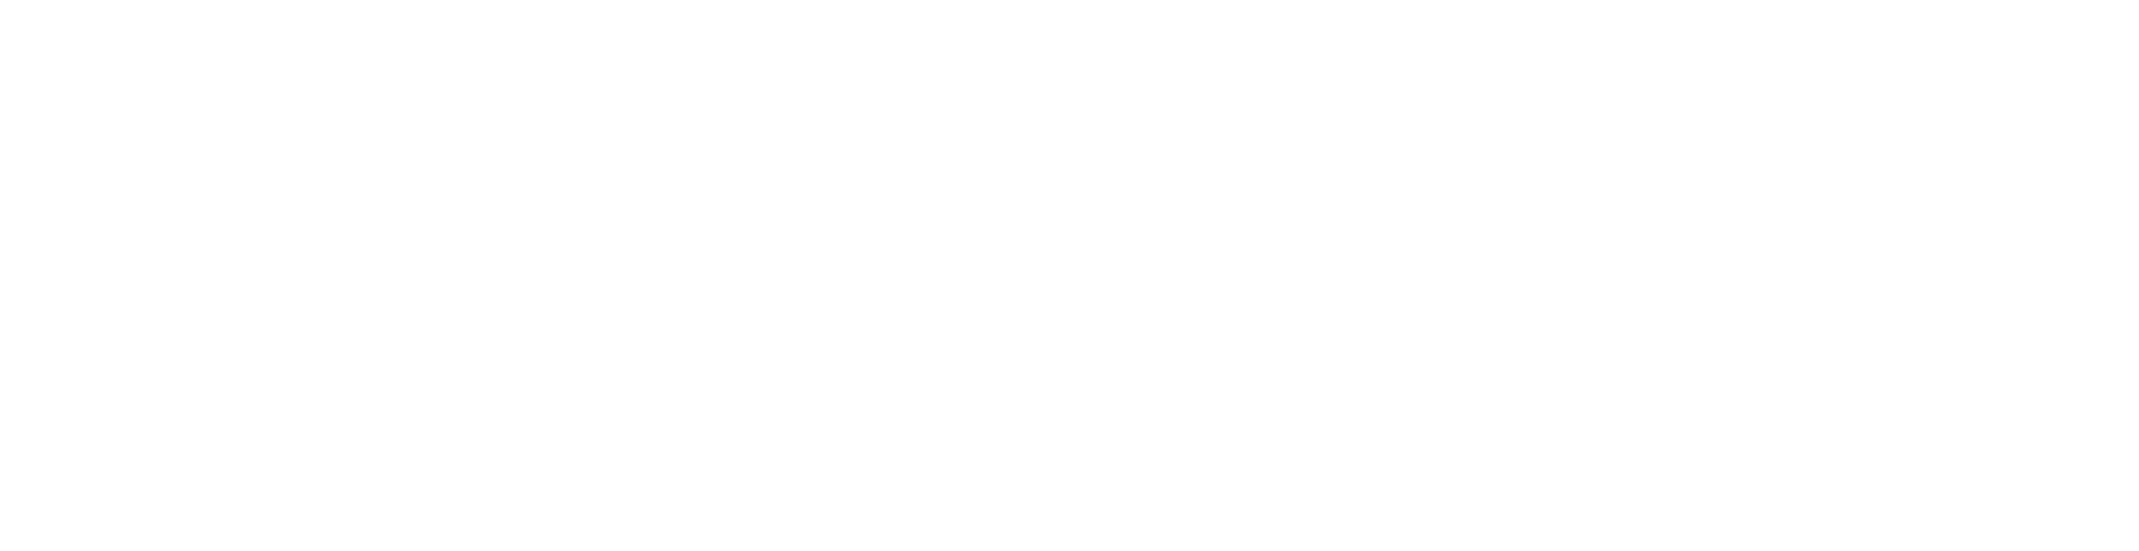 Sigma Loyalty Group Inc.  Marque de commerce.